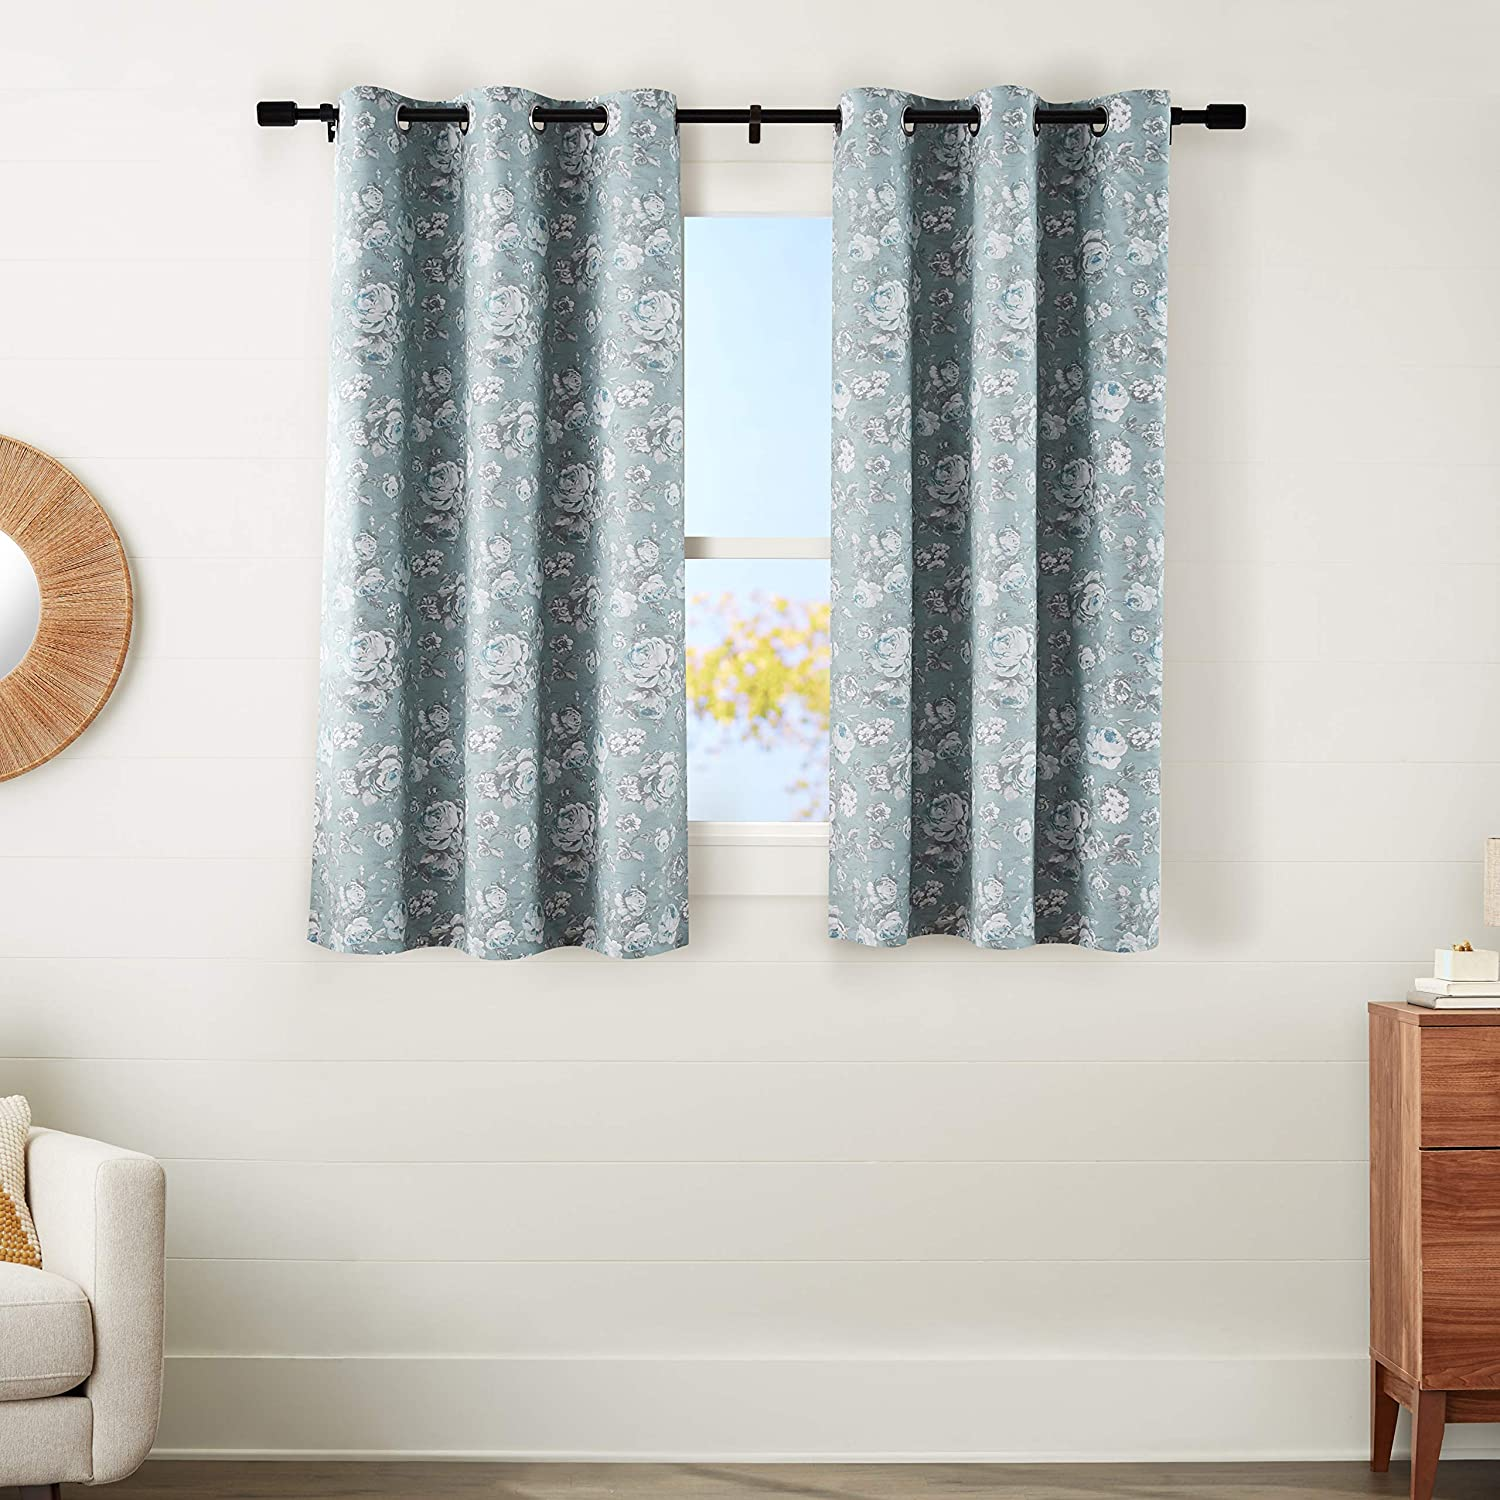 """AmazonBasics 100% Blackout Silky Soft Fabric Window Panel with Grommets and Thermal Insulated, Noise Reducing Blackout Liner - 42"""" x 54"""", Blue Floral"""